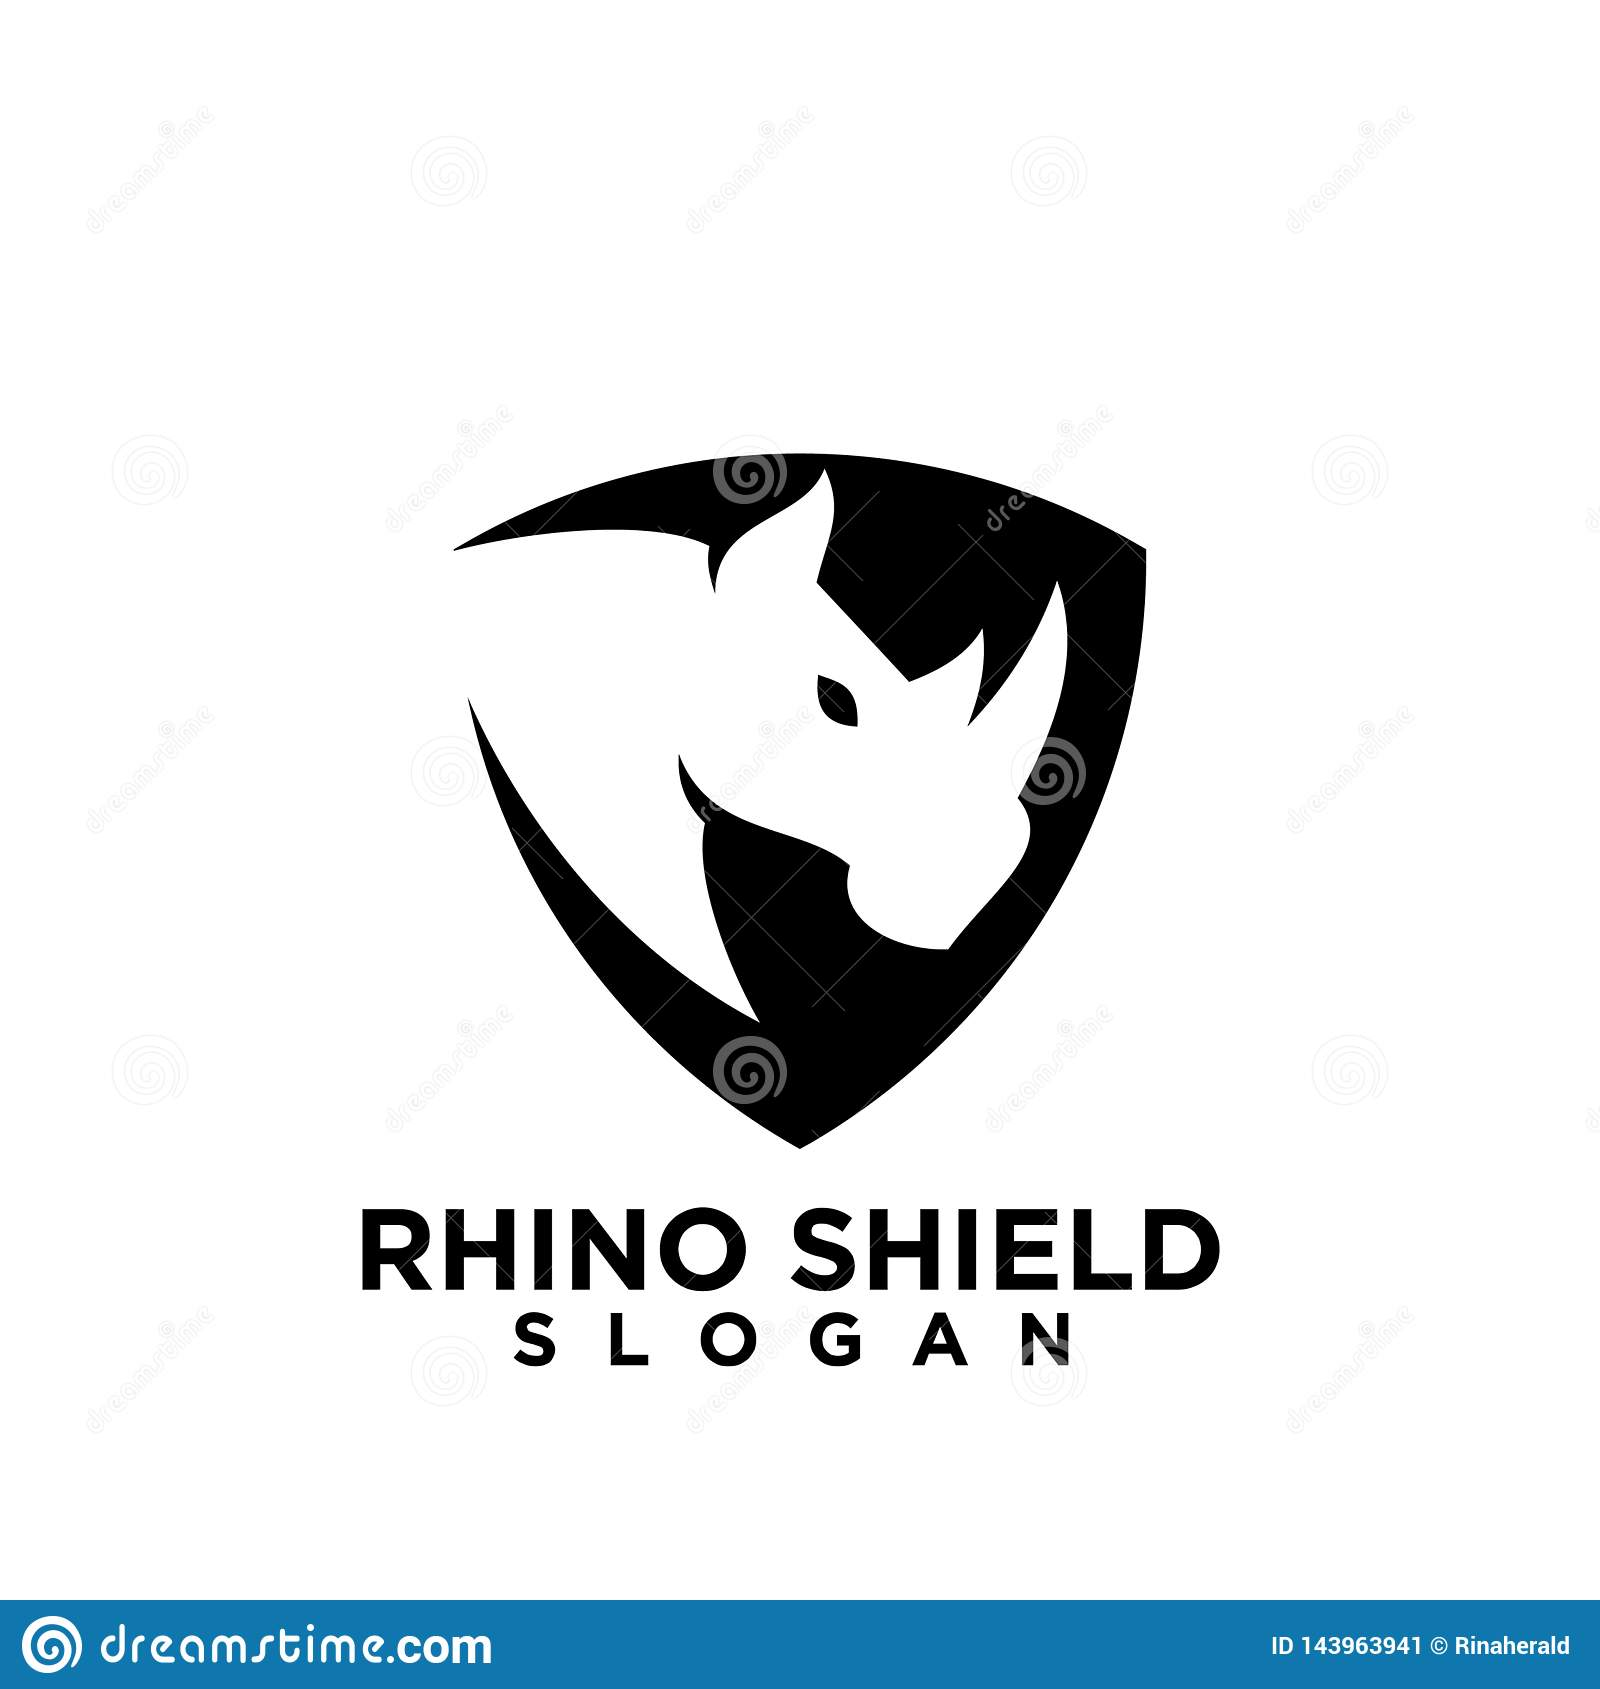 Rhino black shield logo icon designs vector illustration animal save protection